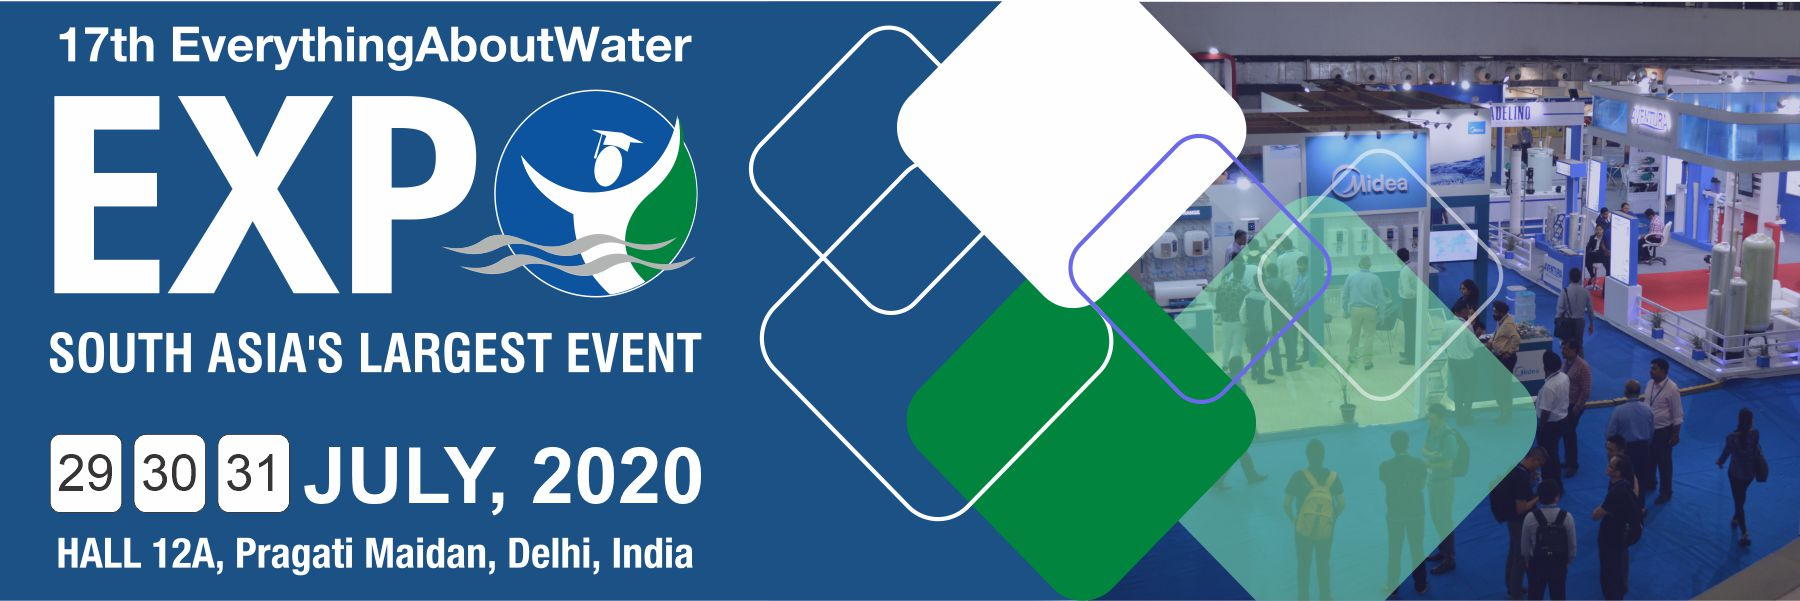 Everything About Water Expo (2020)